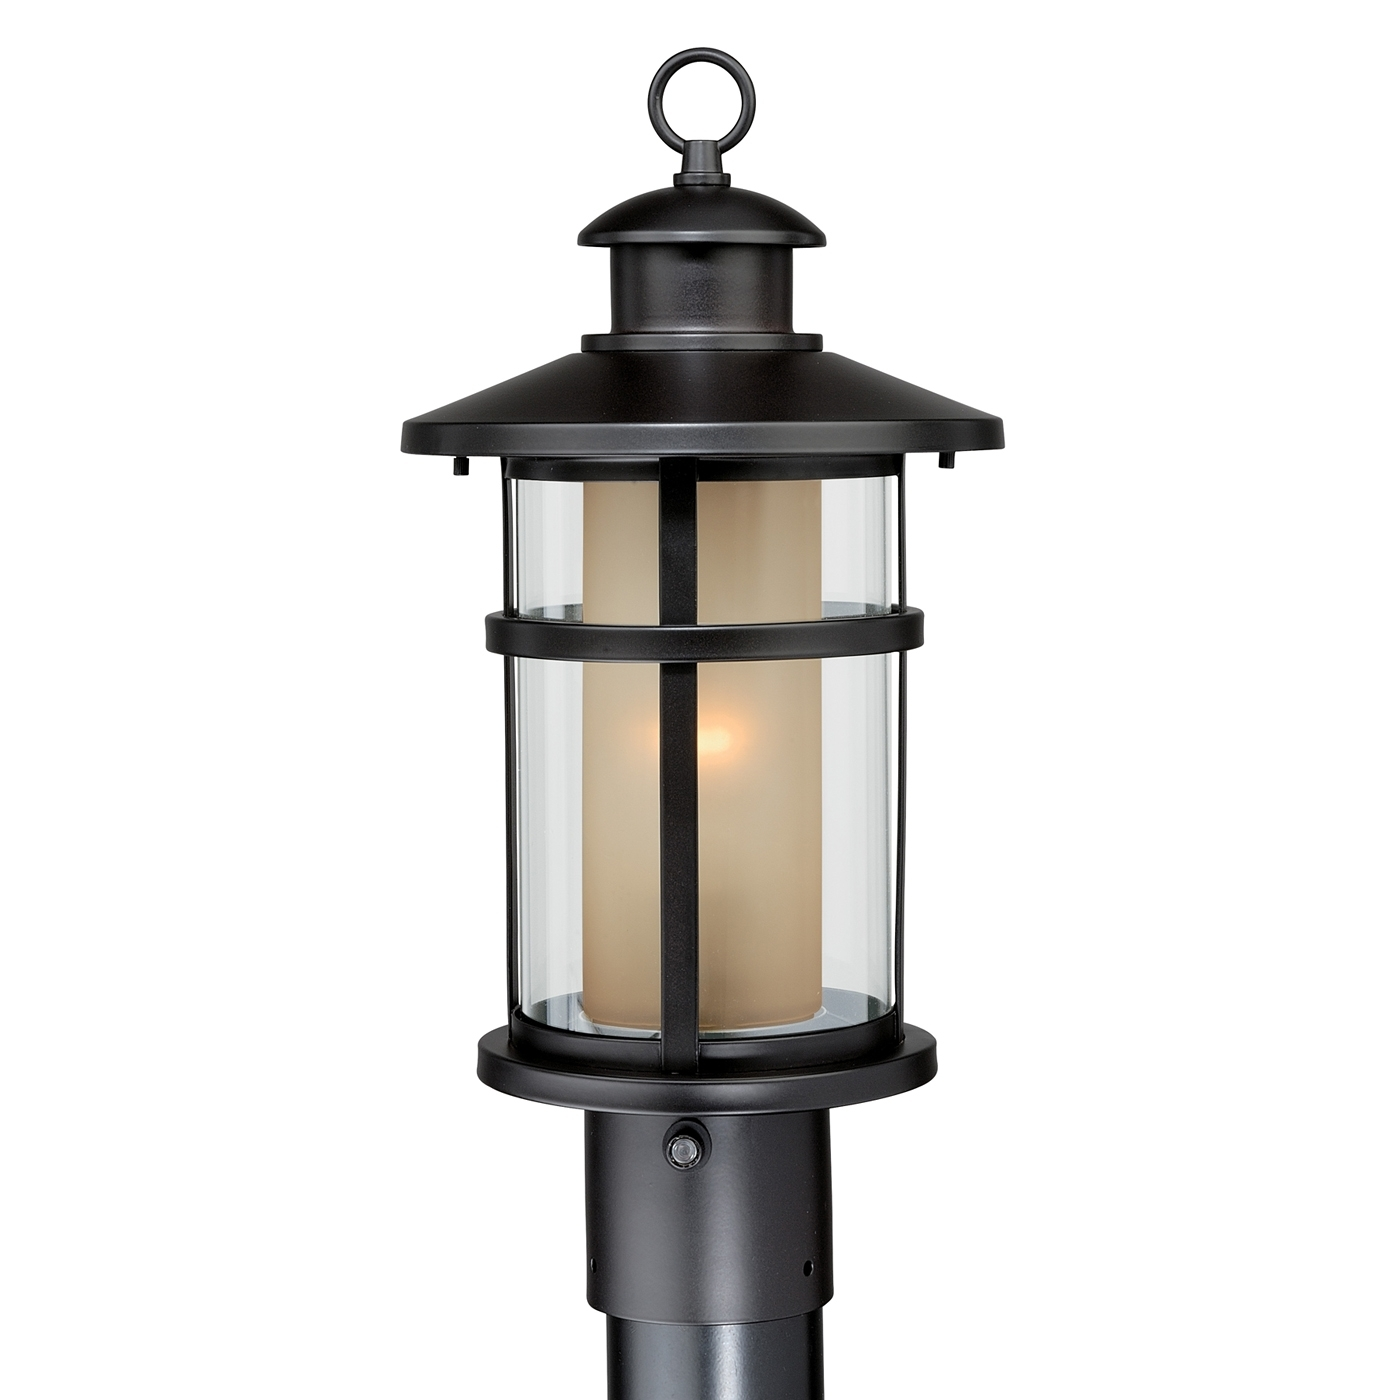 Outdoor Post Lights Canada: 15 Collection Of Lowes Solar Garden Lights Fixtures